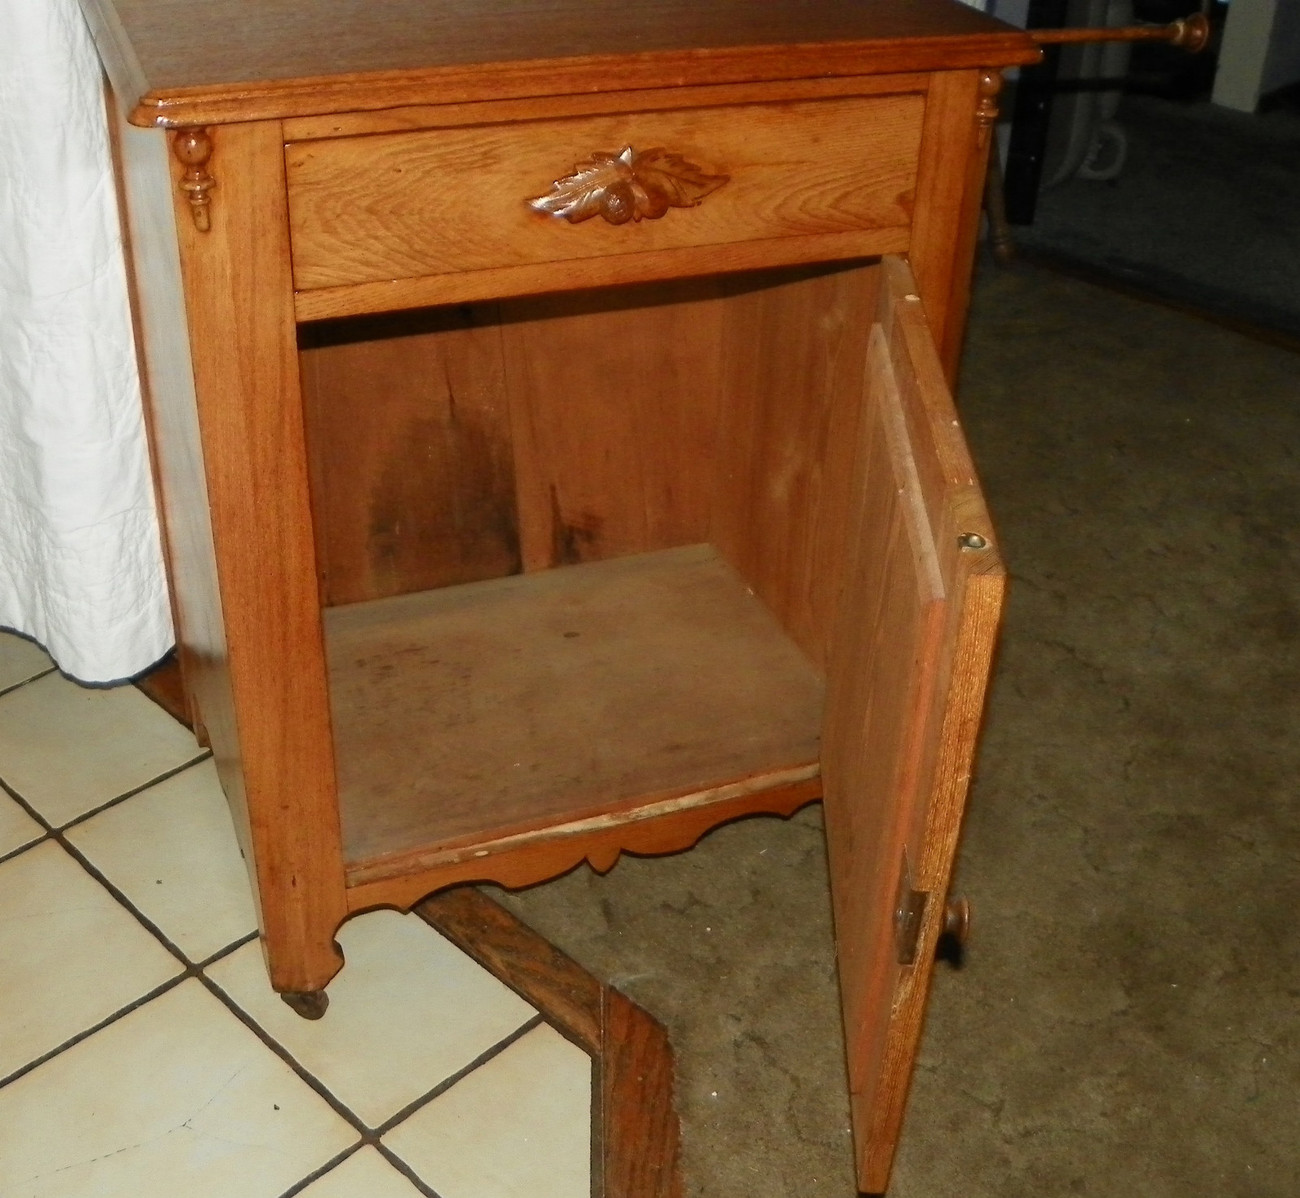 Mid 1800's Chestnut Washstand Cabinet with Towel Rack